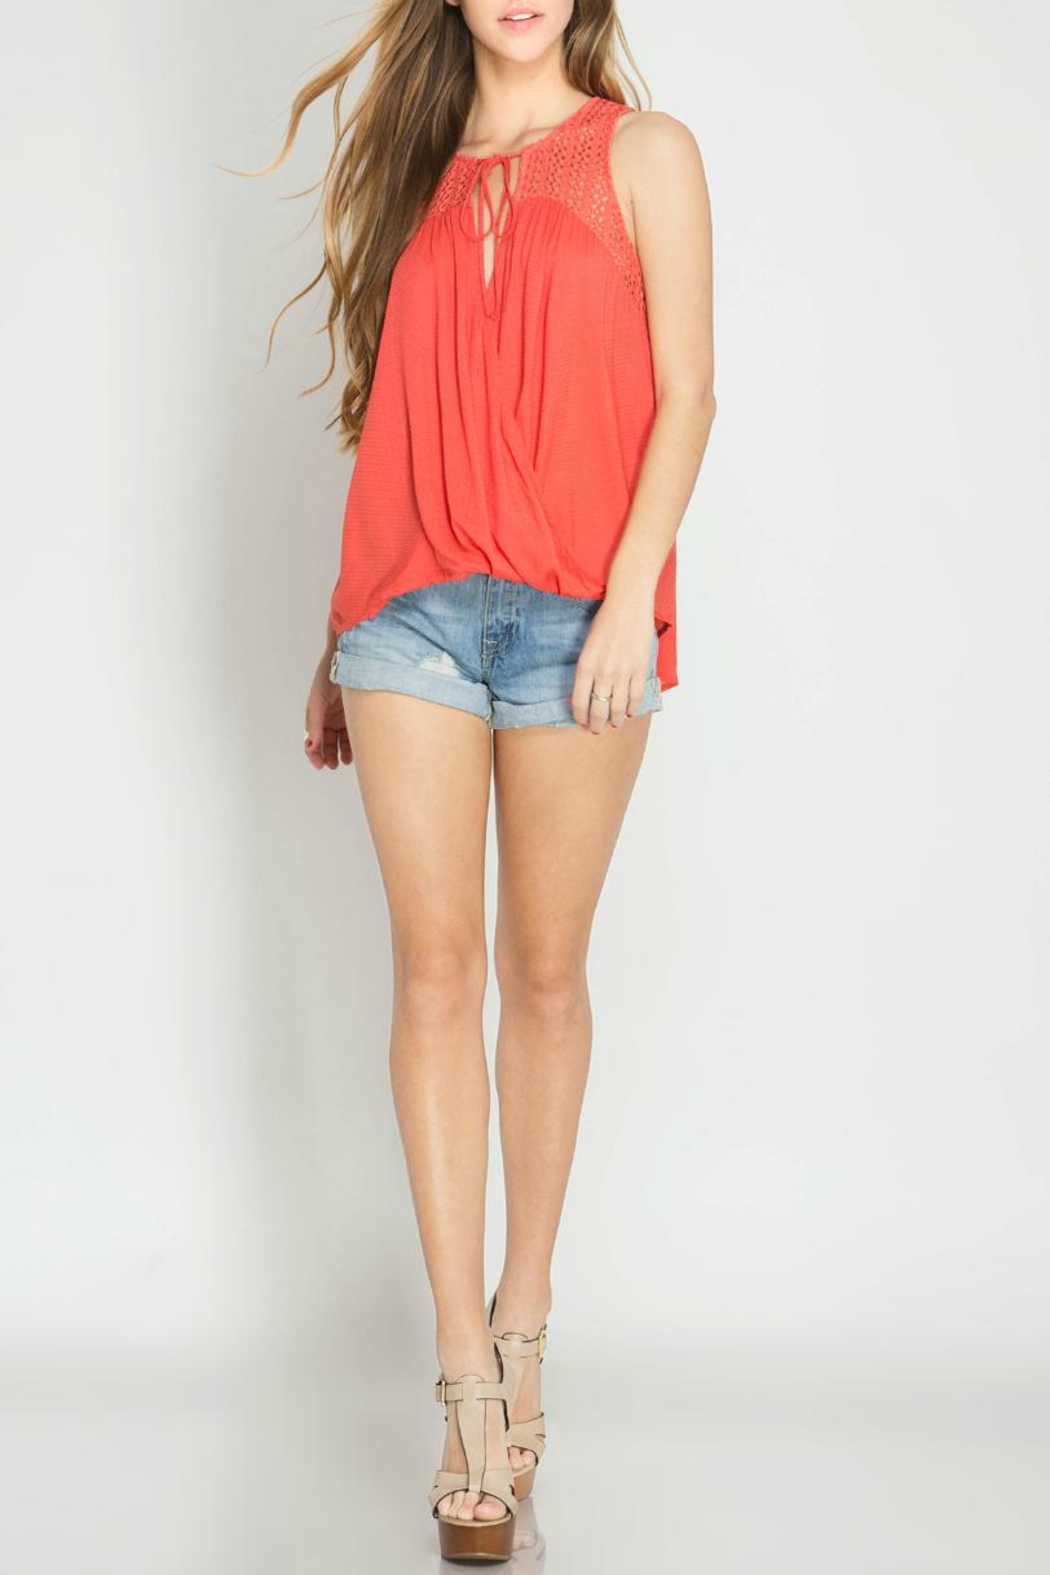 She + Sky Sleeveless Textured Top - Back Cropped Image